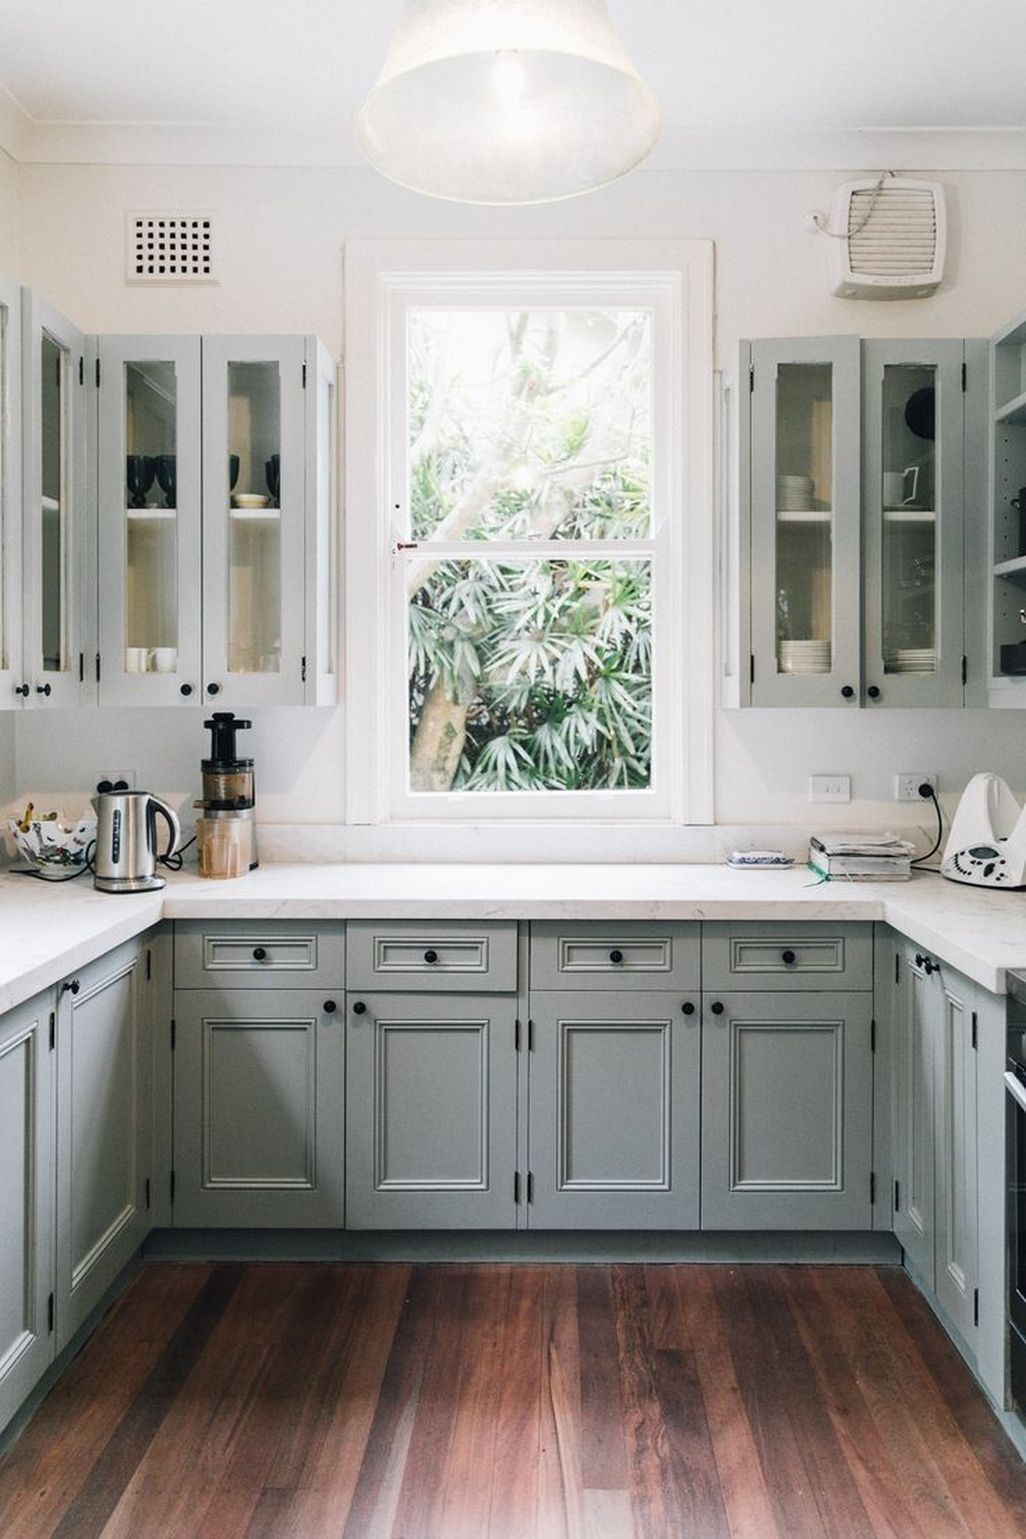 This Type Of Unfinished Kitchen Cabinets Can Be An Inspiring And Spectacular Idea Unfinishedkitchenca In 2020 Kitchen Remodel Small Kitchen Style White Kitchen Design